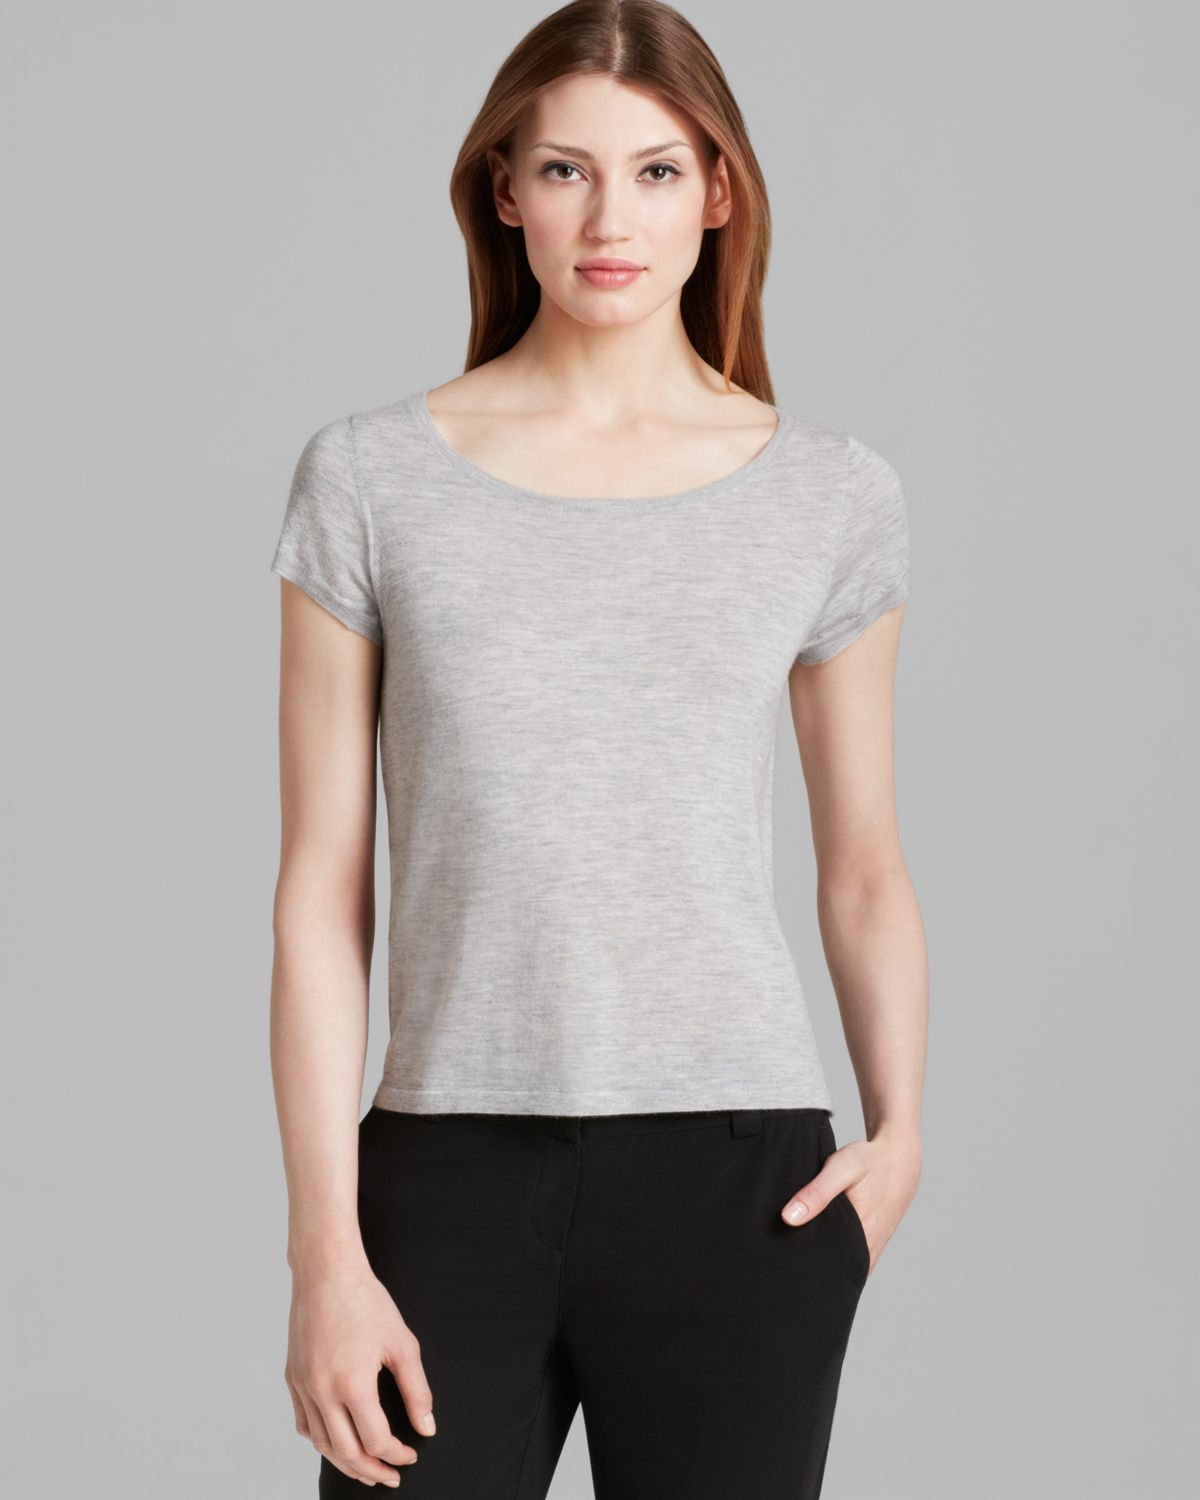 6304a1c8e66 Lyst - Eileen Fisher Ballet Neck Cap Sleeve Cashmere Tee in Gray